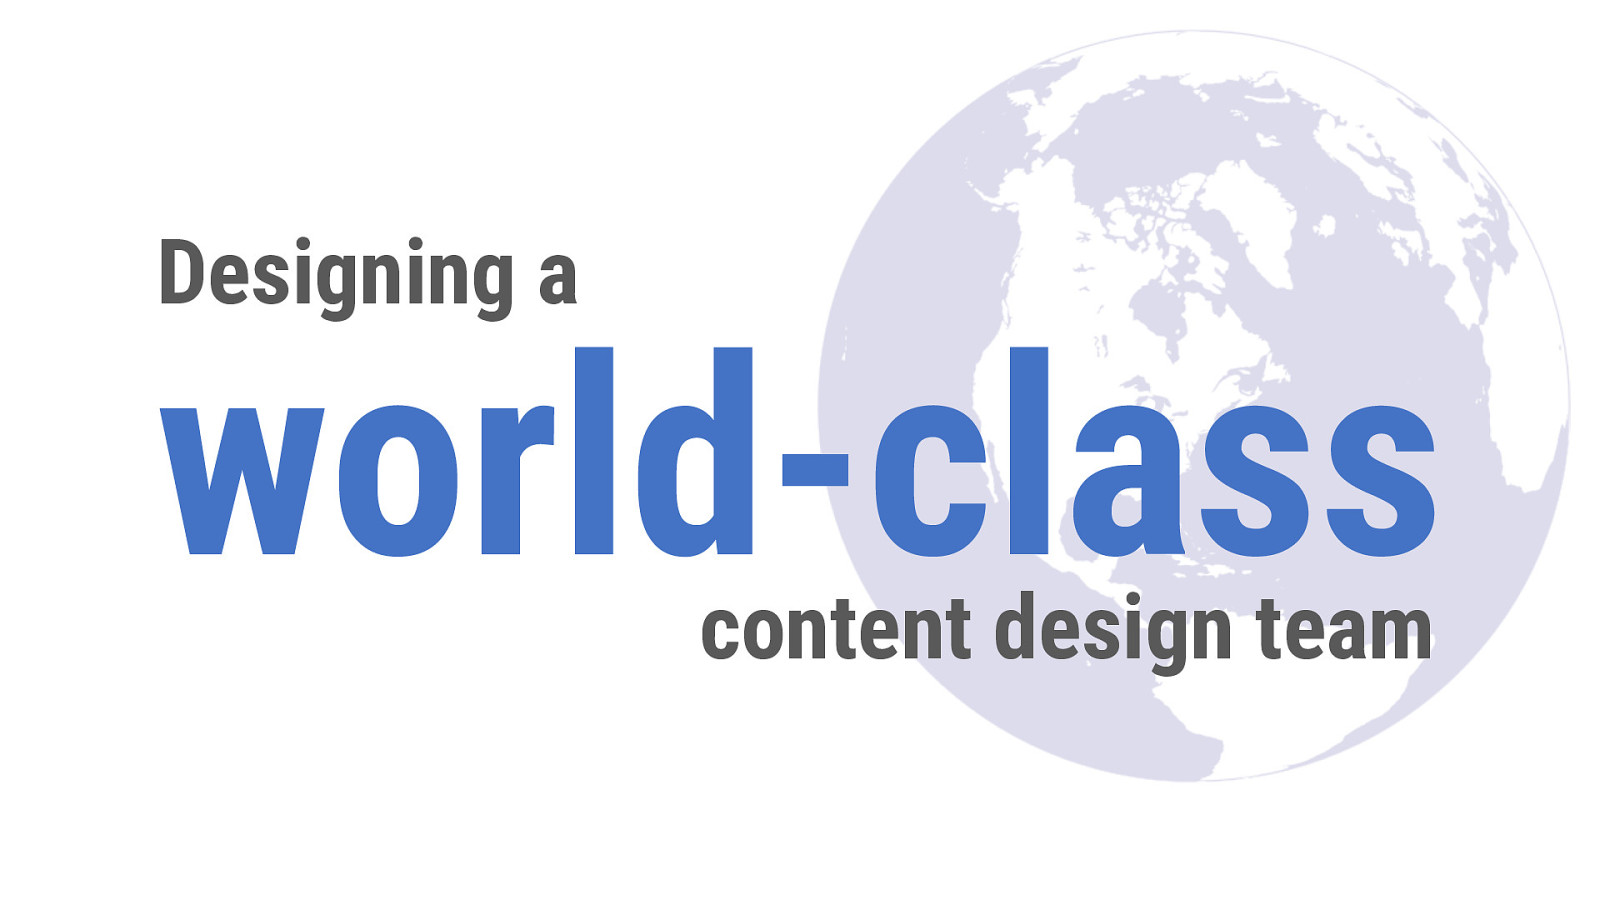 How to Design a World-Class Content Design Team